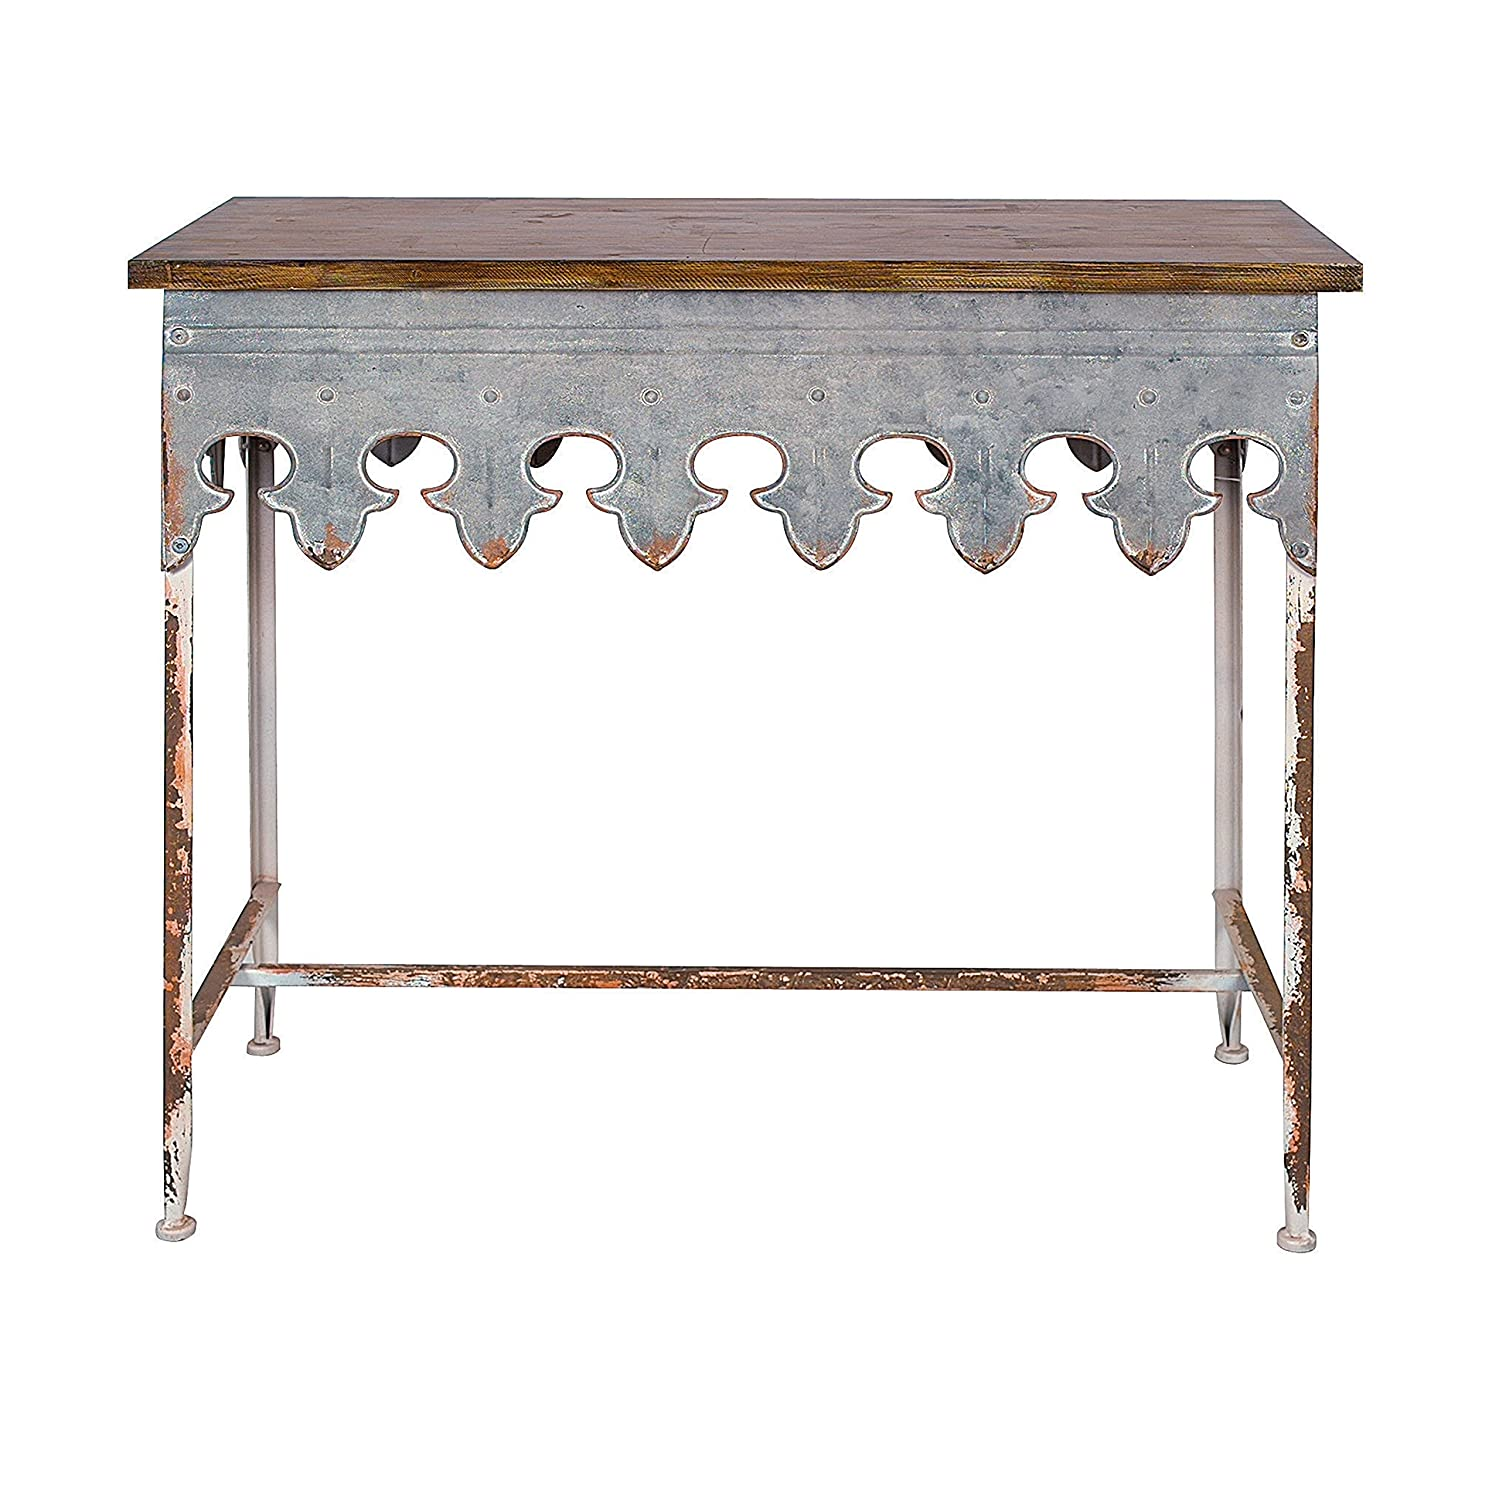 Creative Co-op DA2068 Table Distressed Zinc